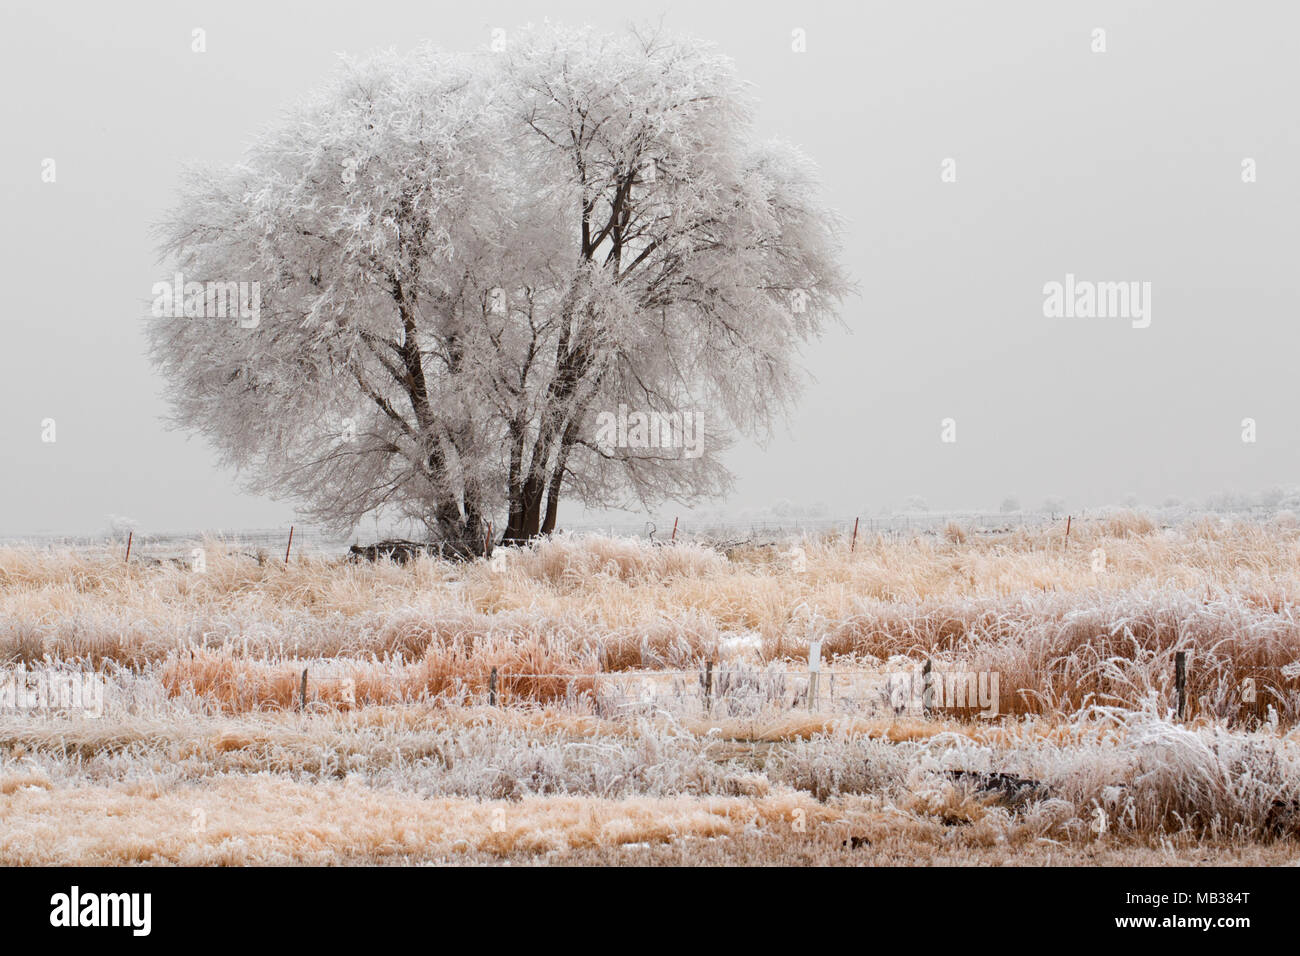 Tree in wetland with frost, Bear River Migratory Bird Refuge, Utah - Stock Image